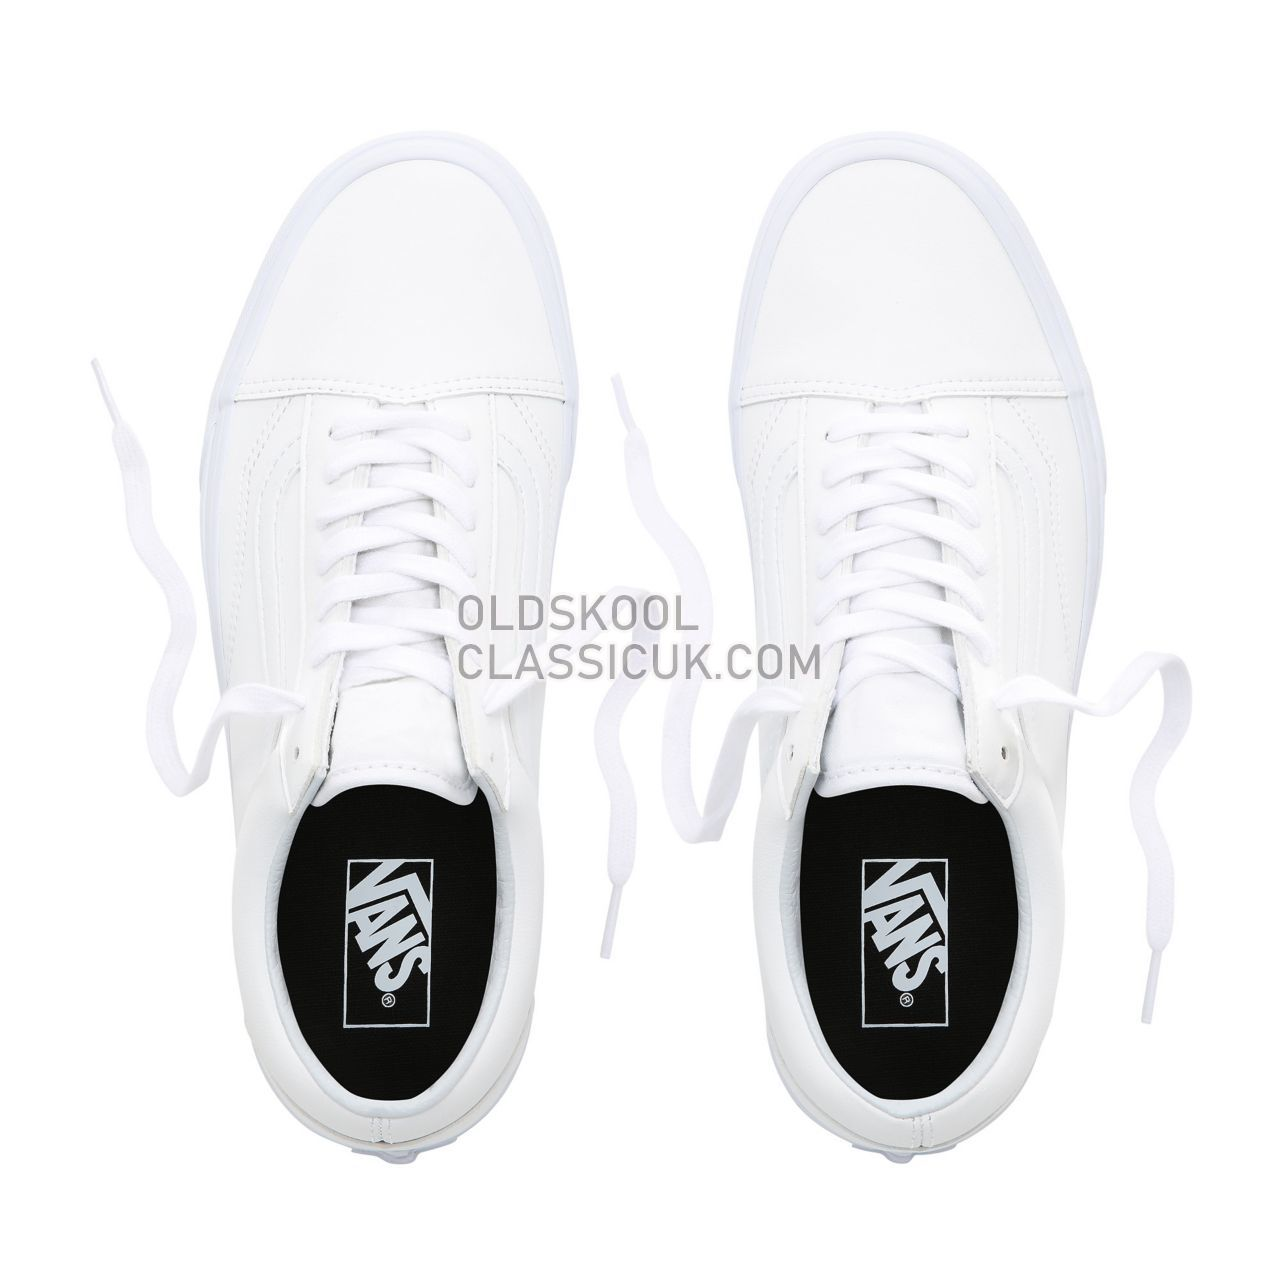 Vans Classic Tumble Old Skool Sneakers Mens Womens Unisex (Classic Tumble) True White VN0A38G1ODJ Shoes